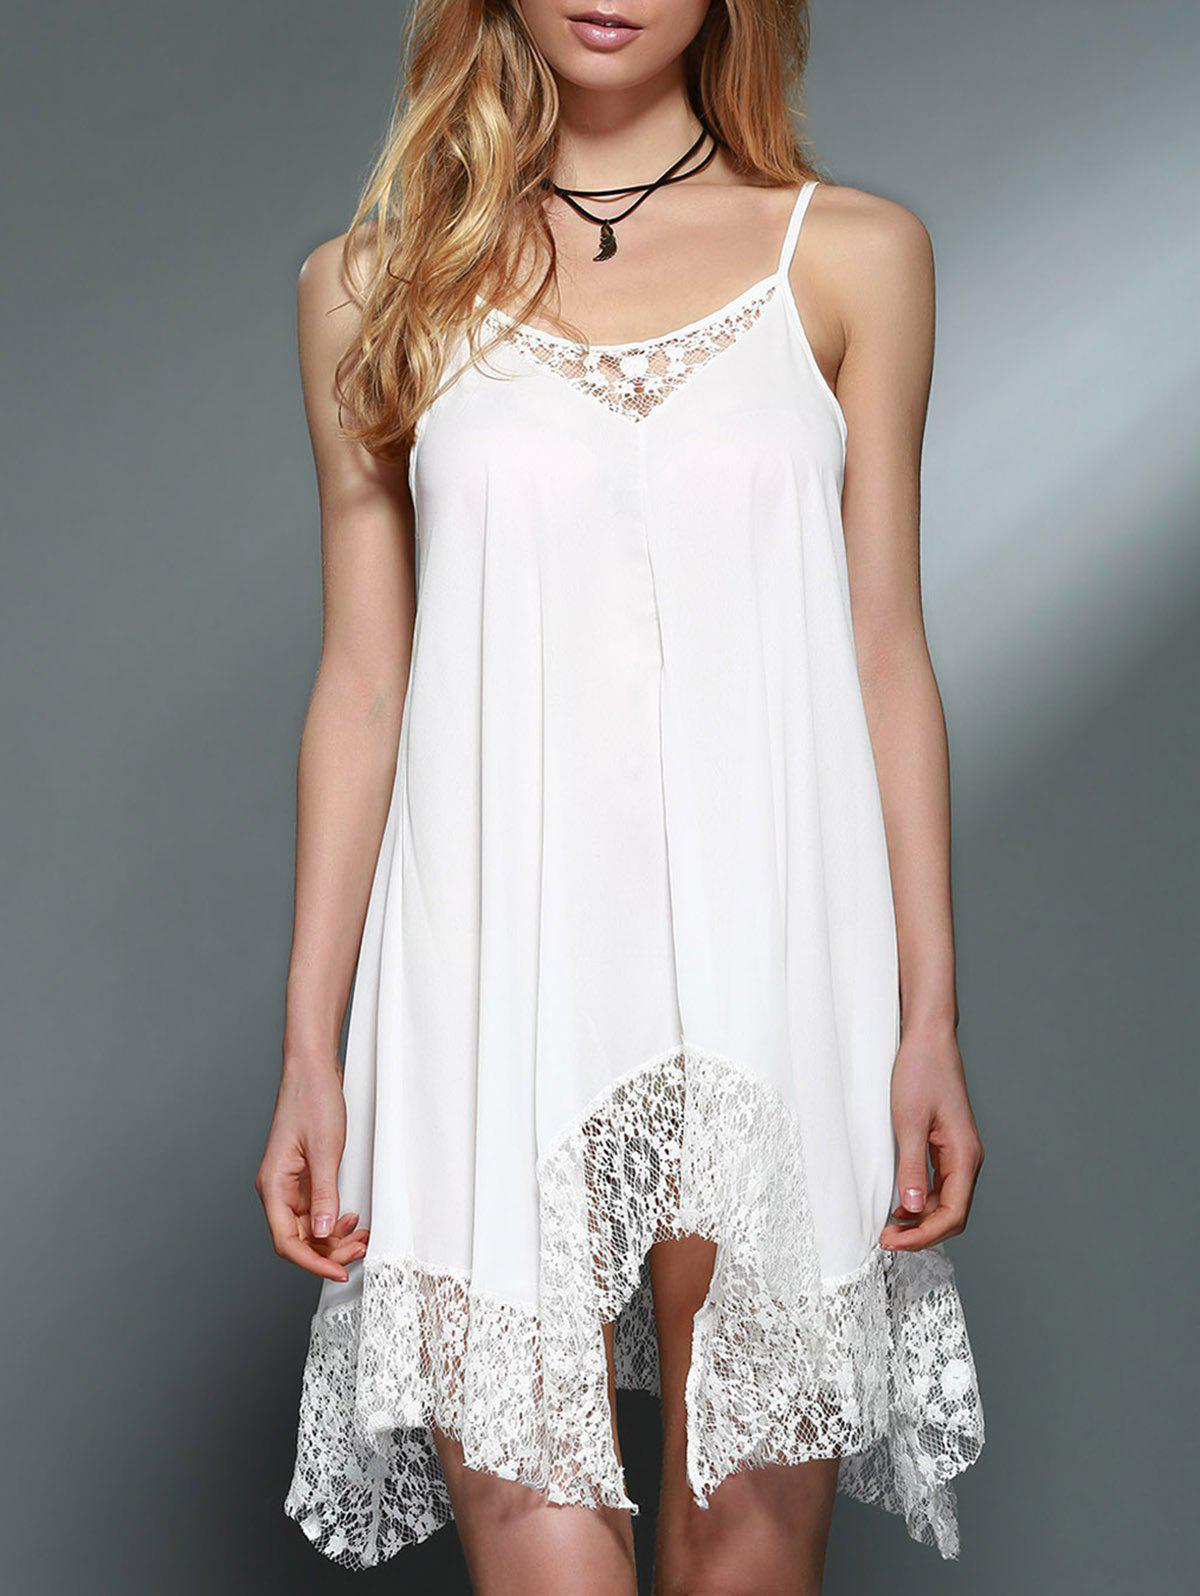 Refreshing Spaghetti Strap Lace Spliced White Handkerchief Dress For Women